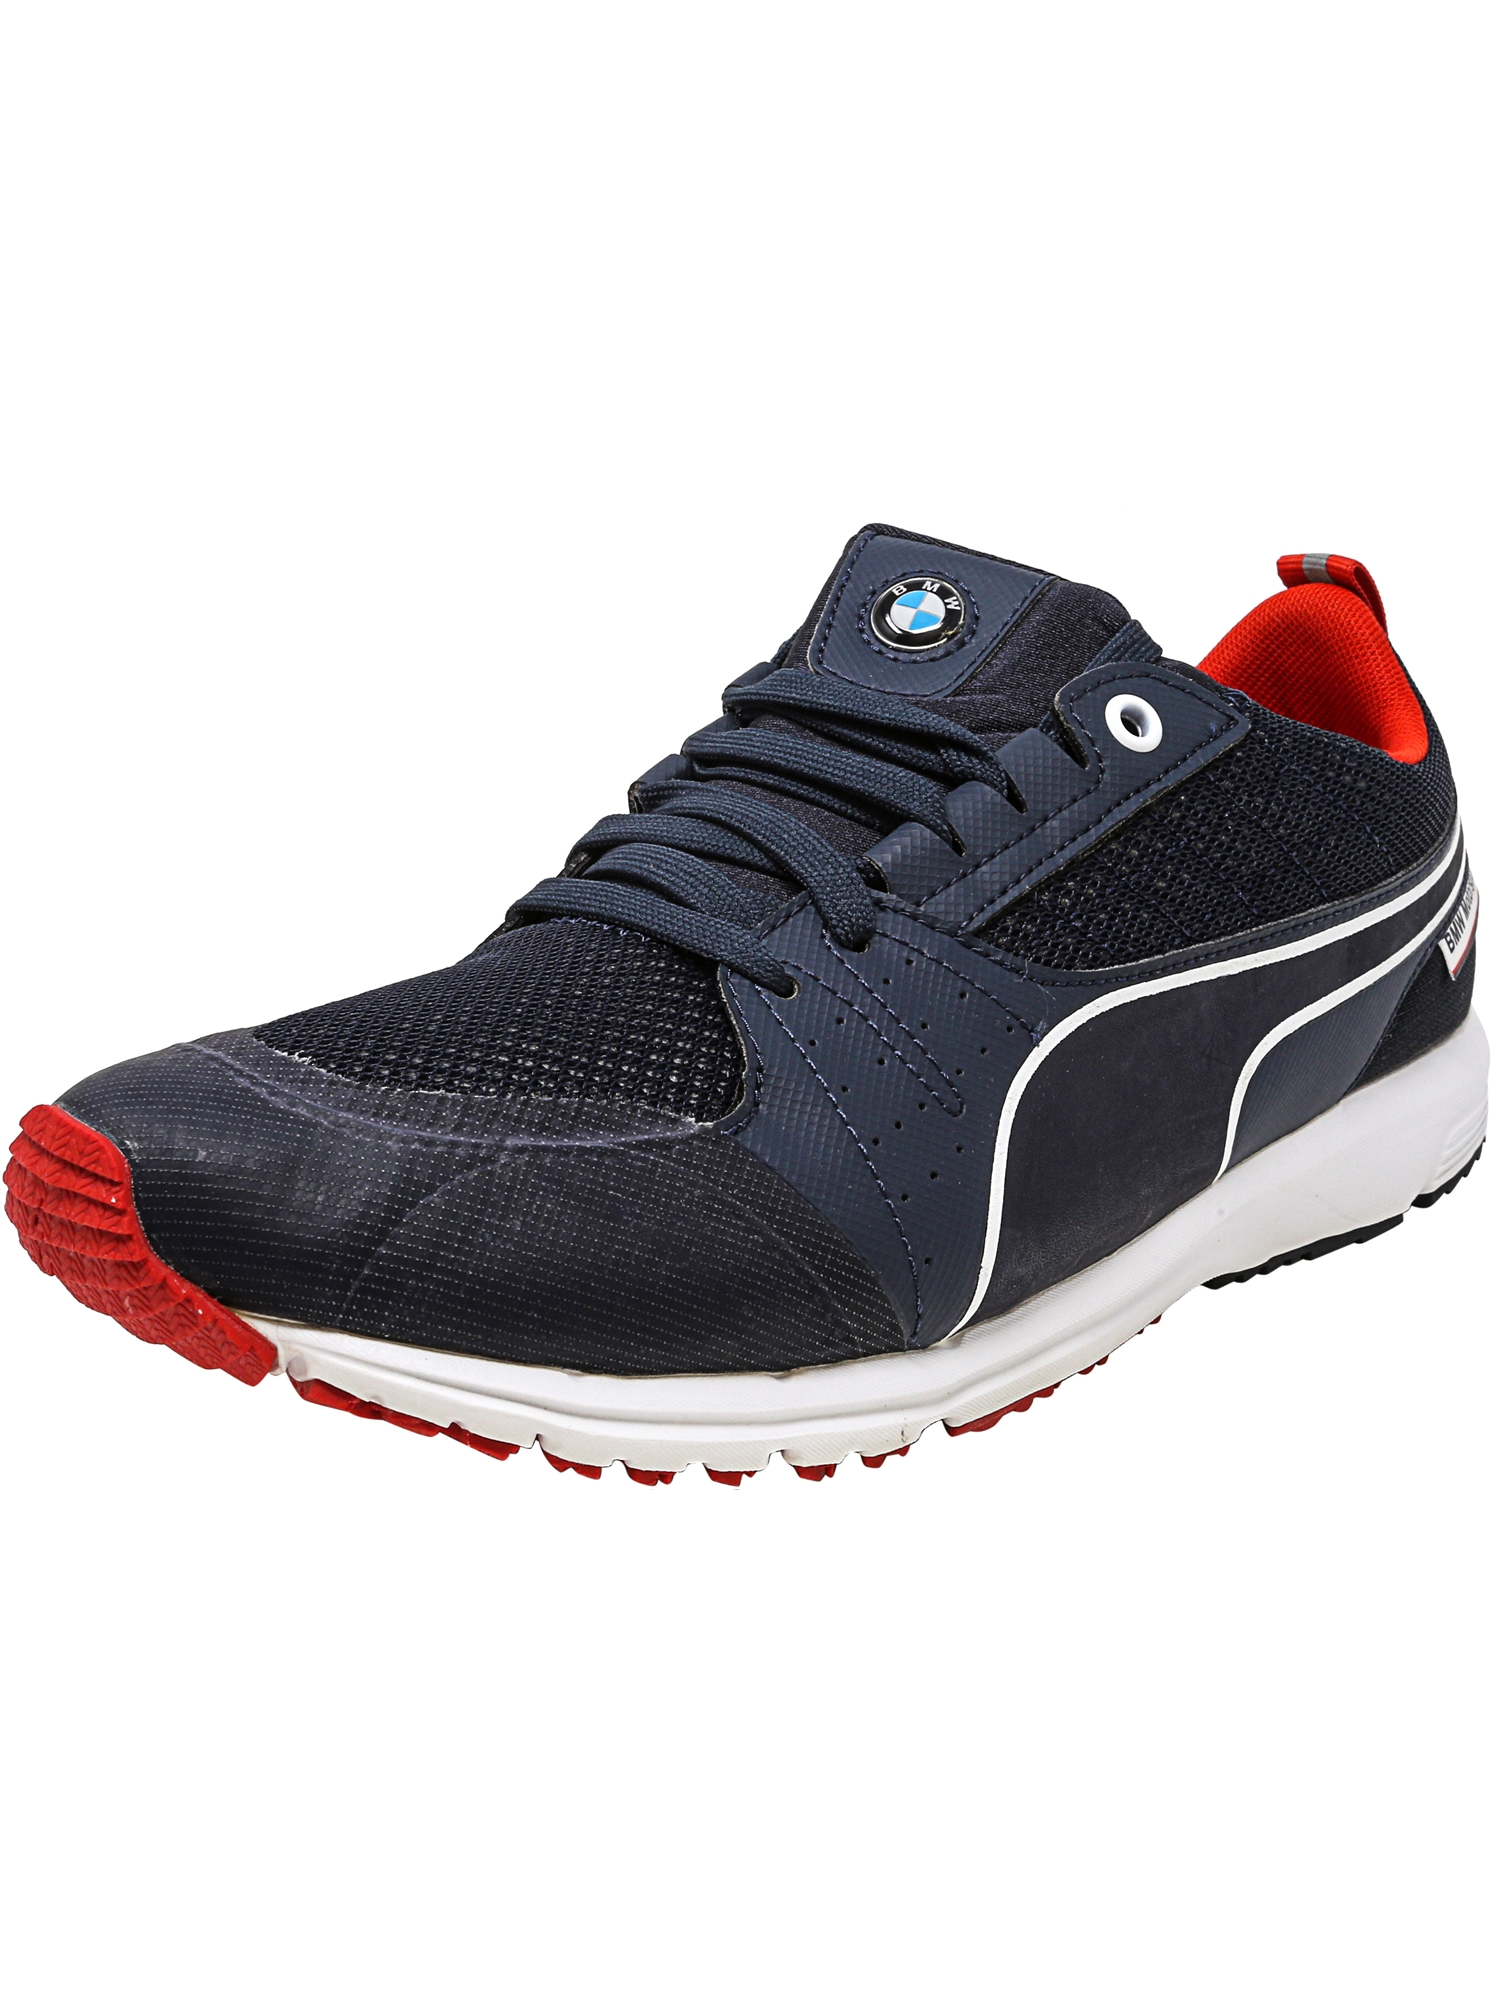 Puma Men's Bmw Motorsports Pitlan Team Blue / High Risk Red Ankle-High Fashion Sneaker - 10M